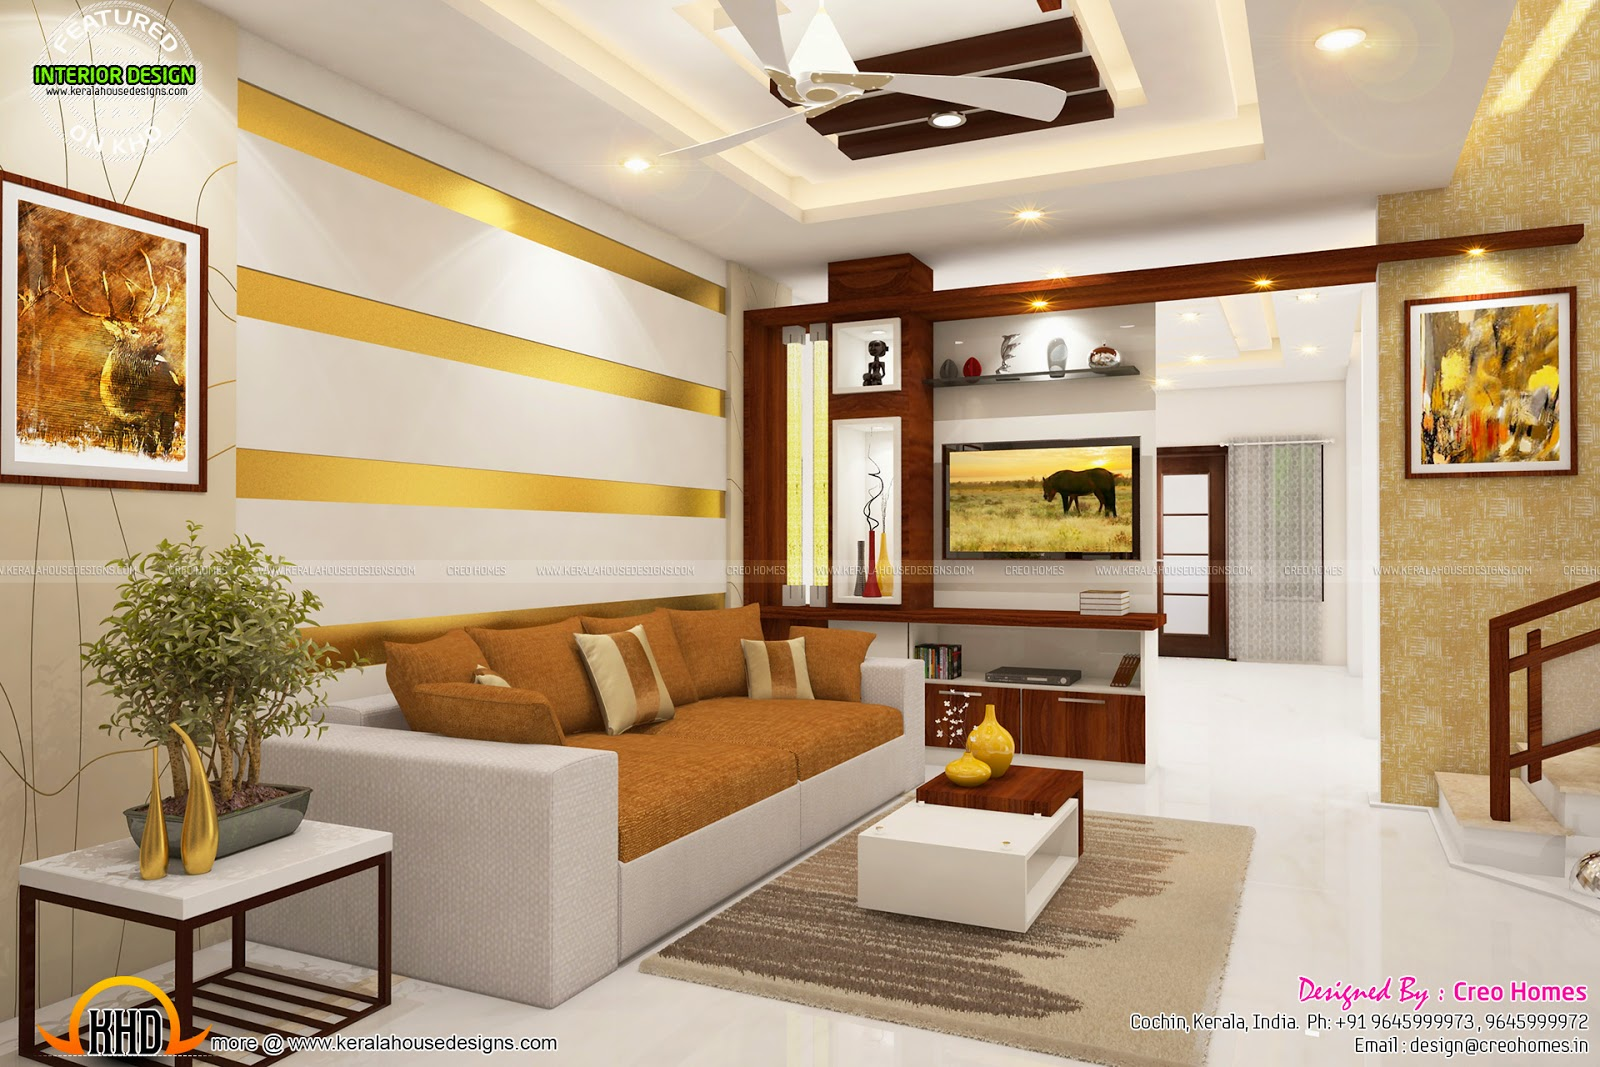 Total home interior solutions by creo homes kerala home for Living room interior in kerala